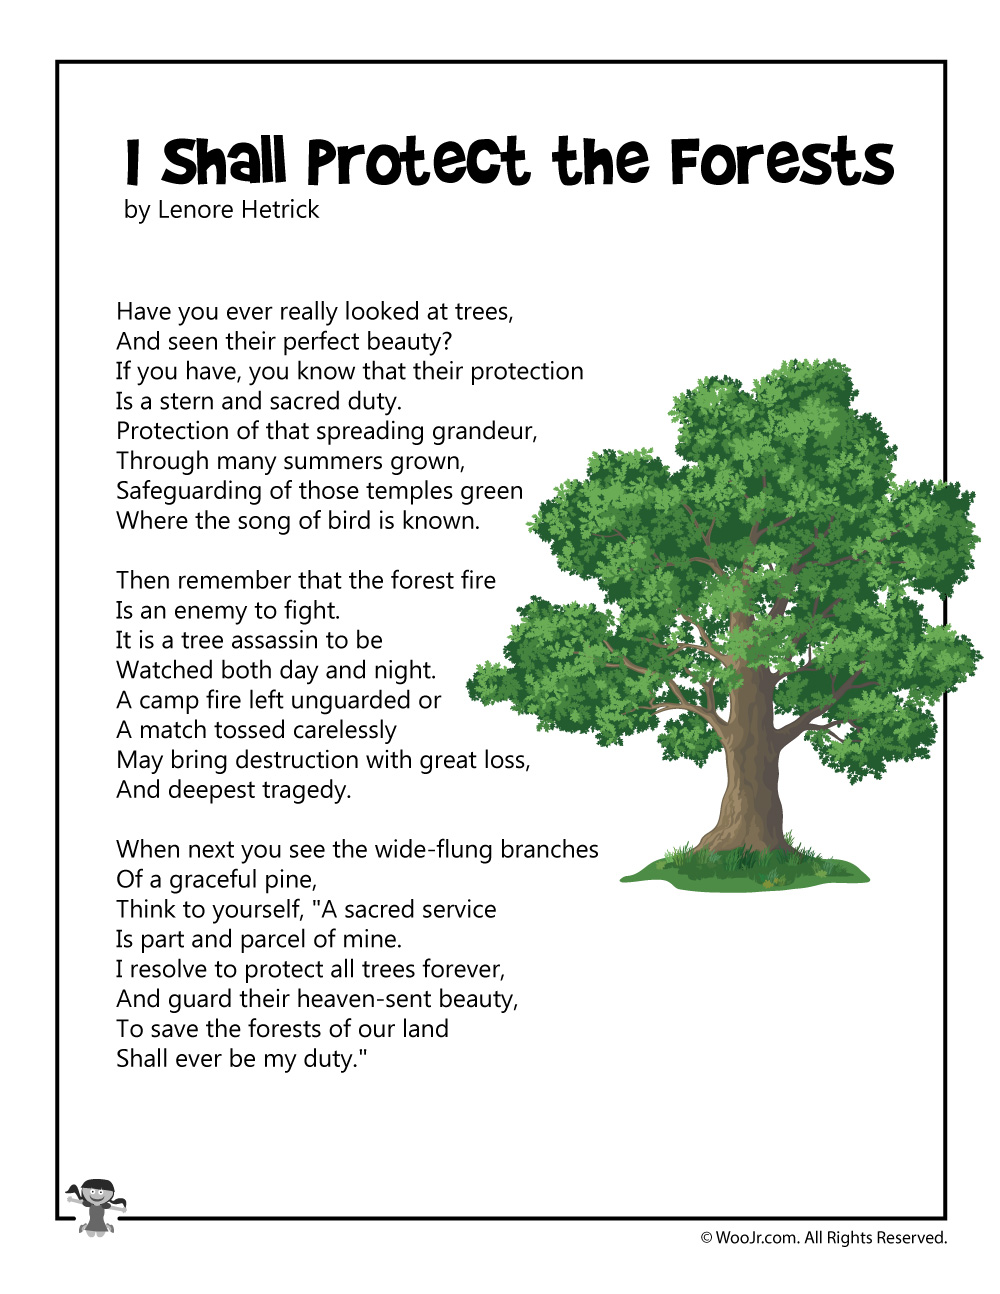 I Shall Protect the Forests Conservation Poem - Woo! Jr. Kids Activities